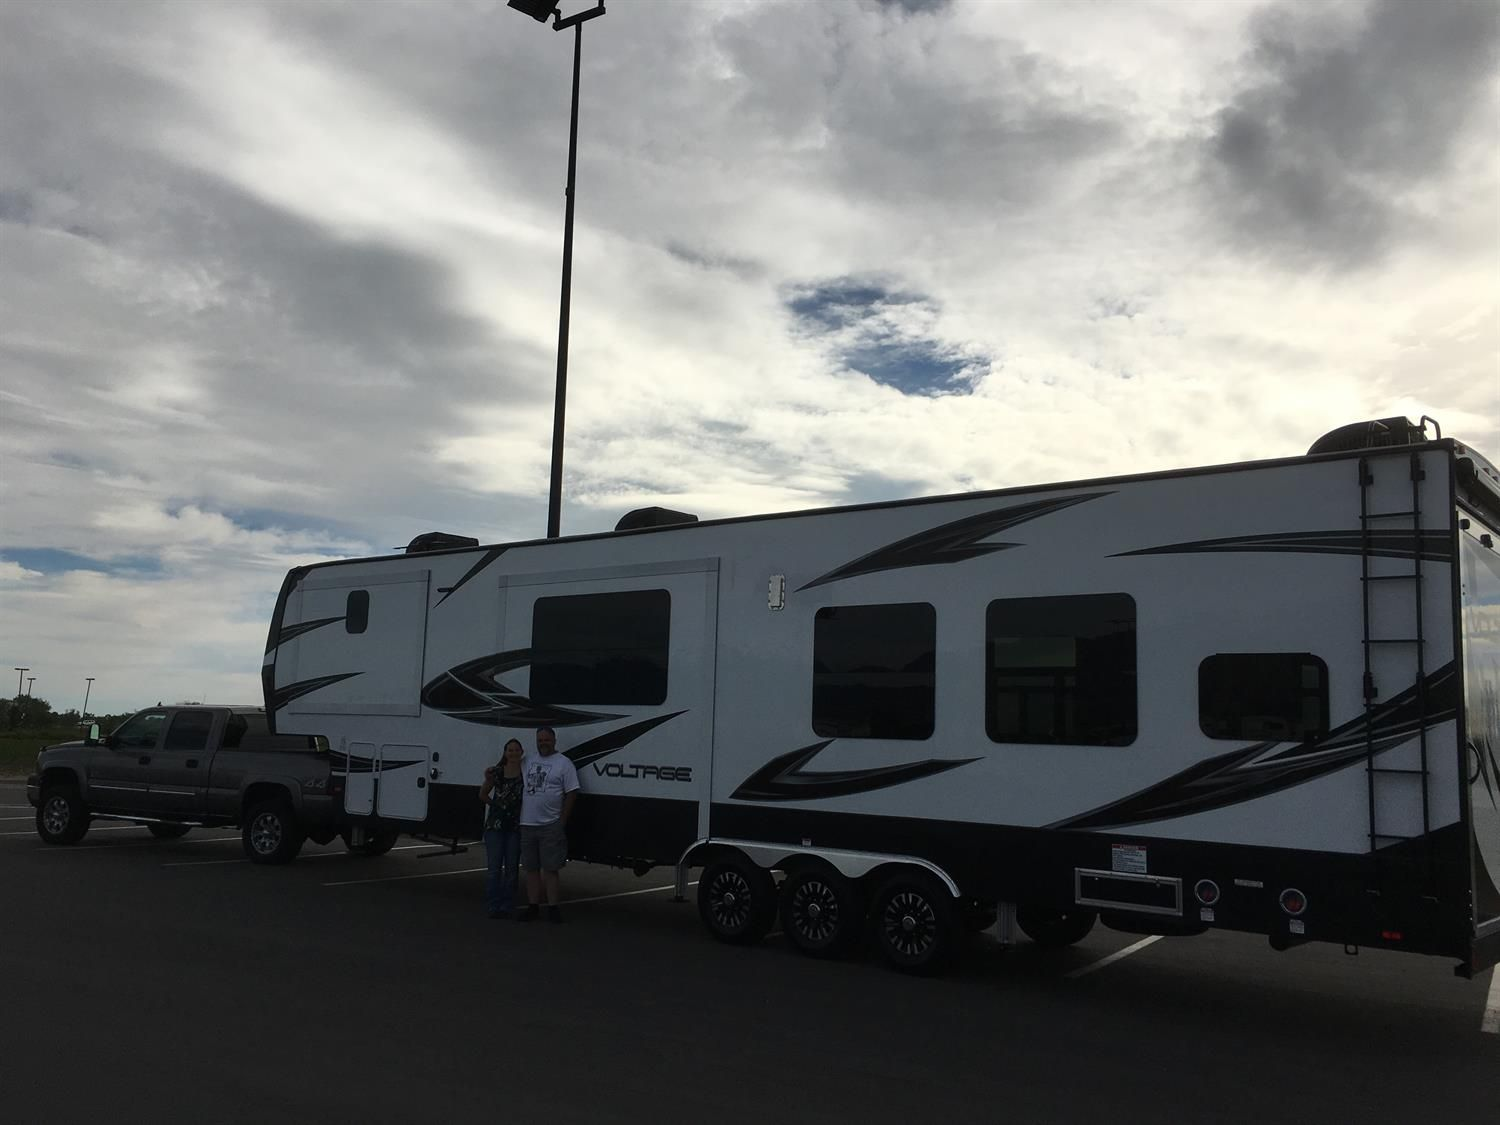 Stephen & karla, we appreciate your business!  Thanks from all of us here at Sierra RV and Terry Sargent!